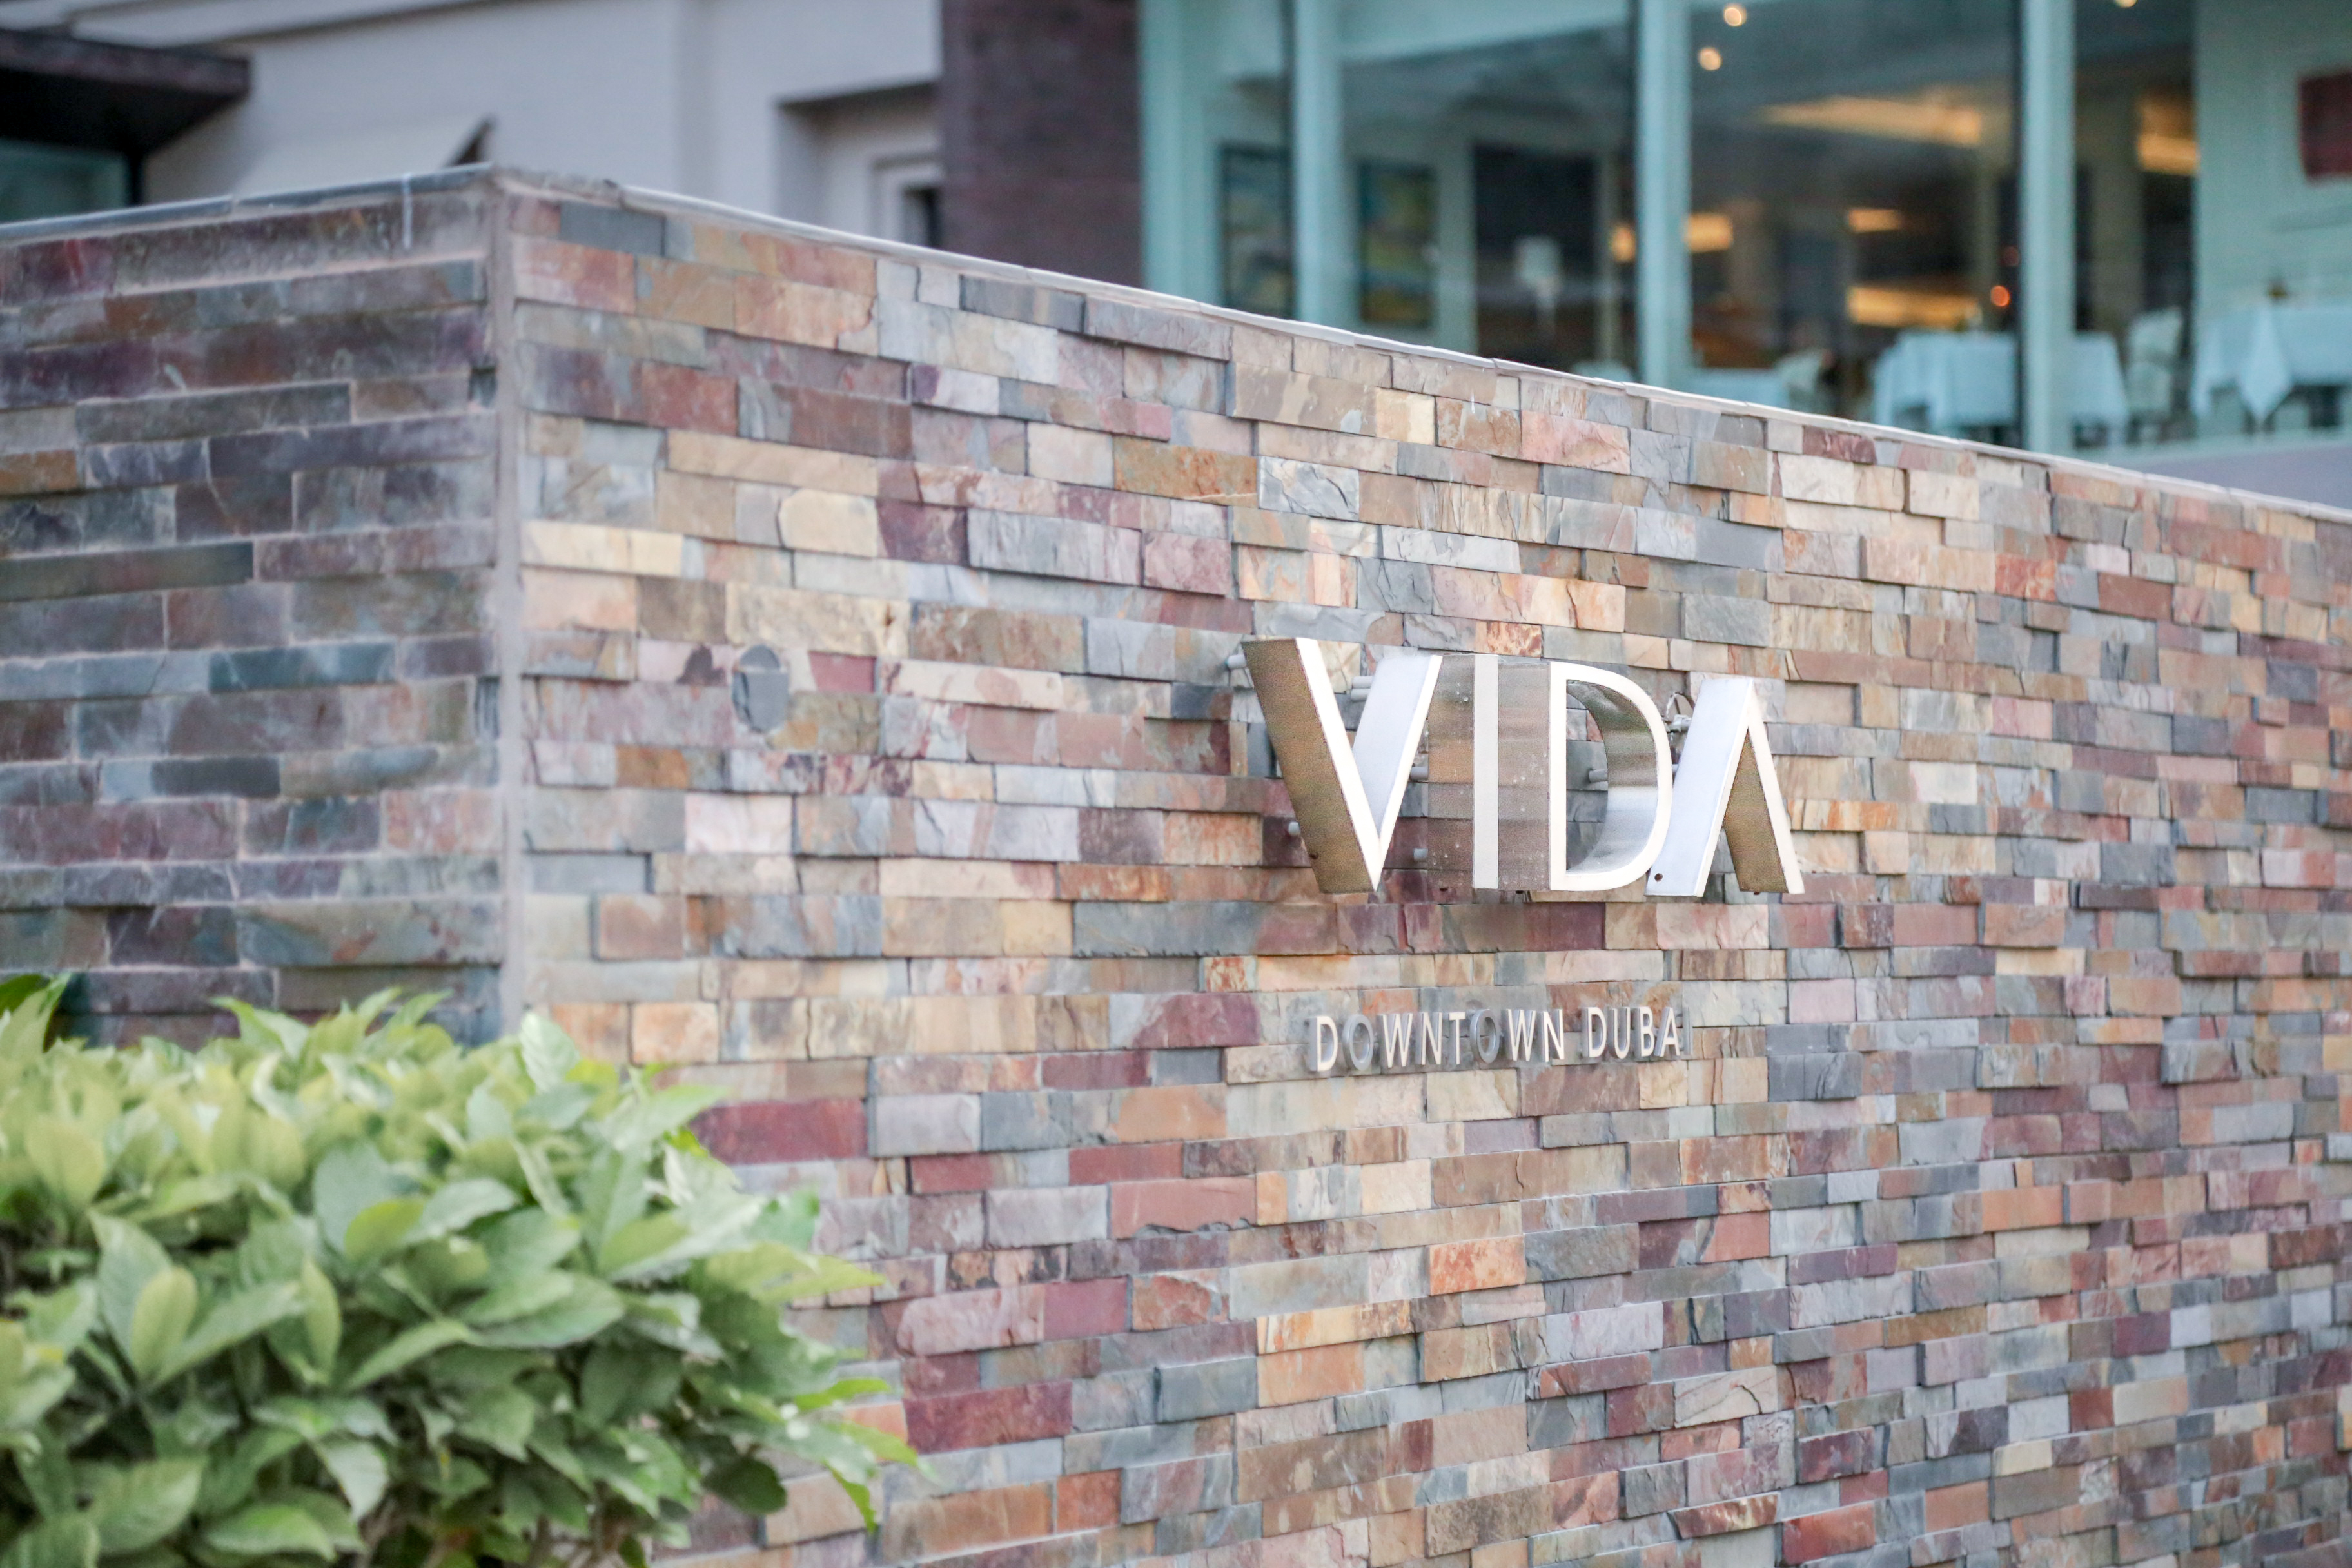 Best Brunch in Town im Vida Downtown Dubai Essen Trinken Food Beverage Champagner Wein Barbeque Hotel Friday Freitag Stadthotel BoutiqueHotel Emaar Manzil